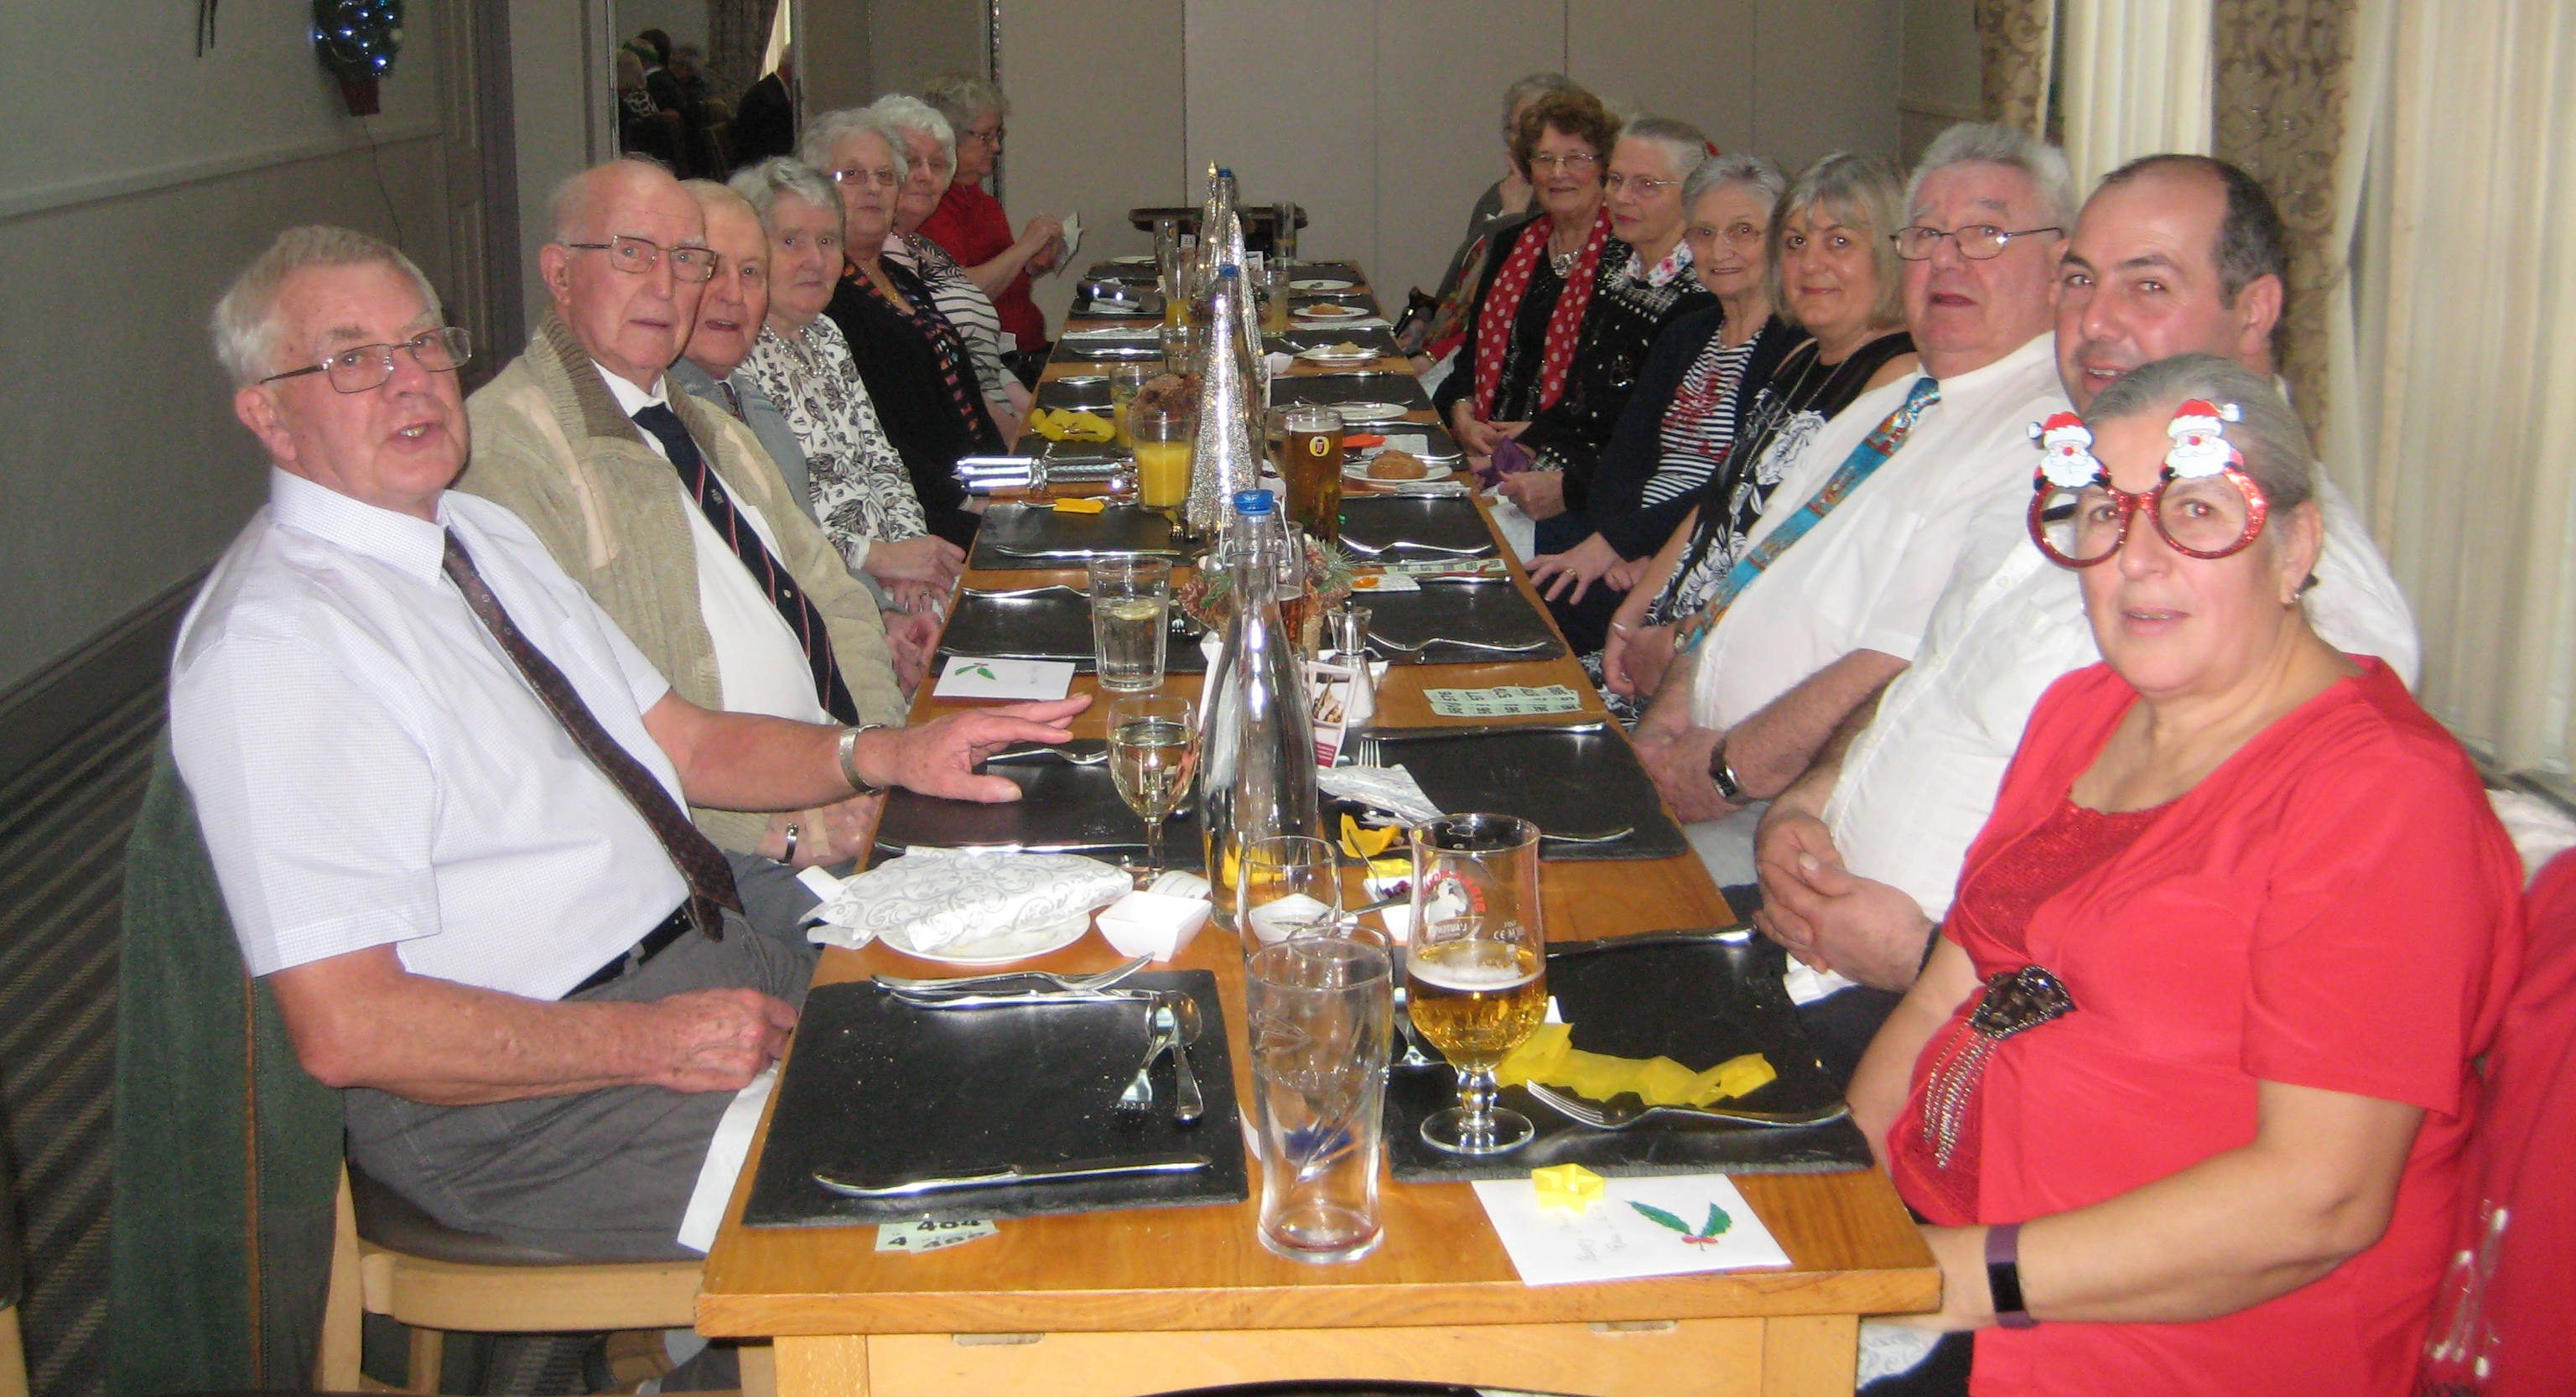 OAP Christmas lunch for Llansadwrn and LLanwrda